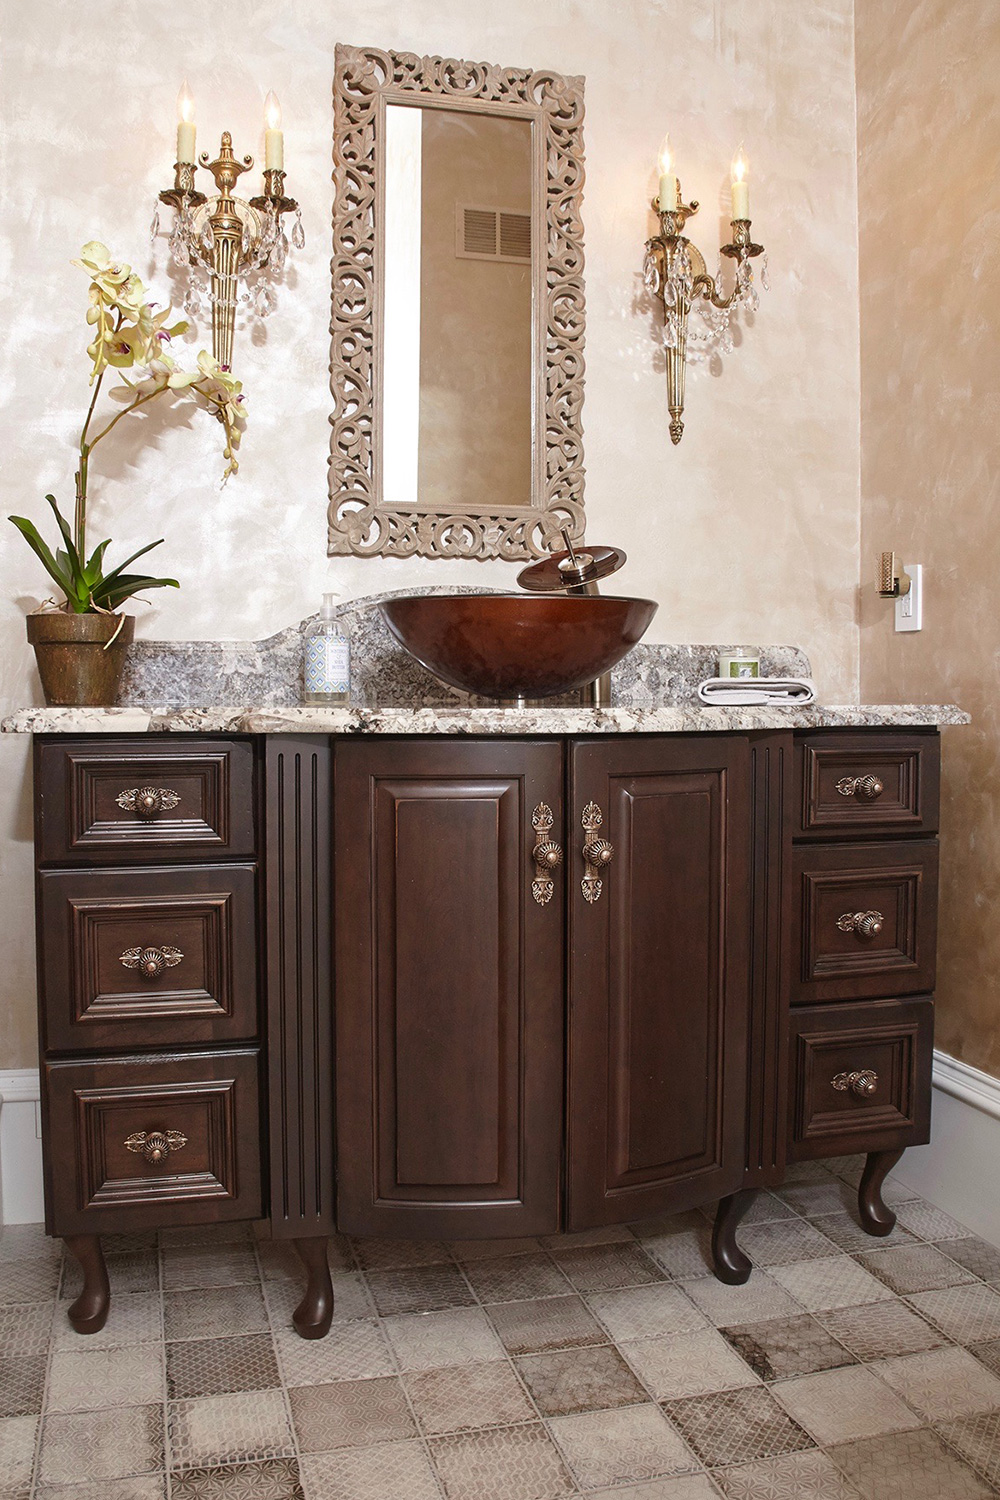 Bathroom Vanity Vessel Sink